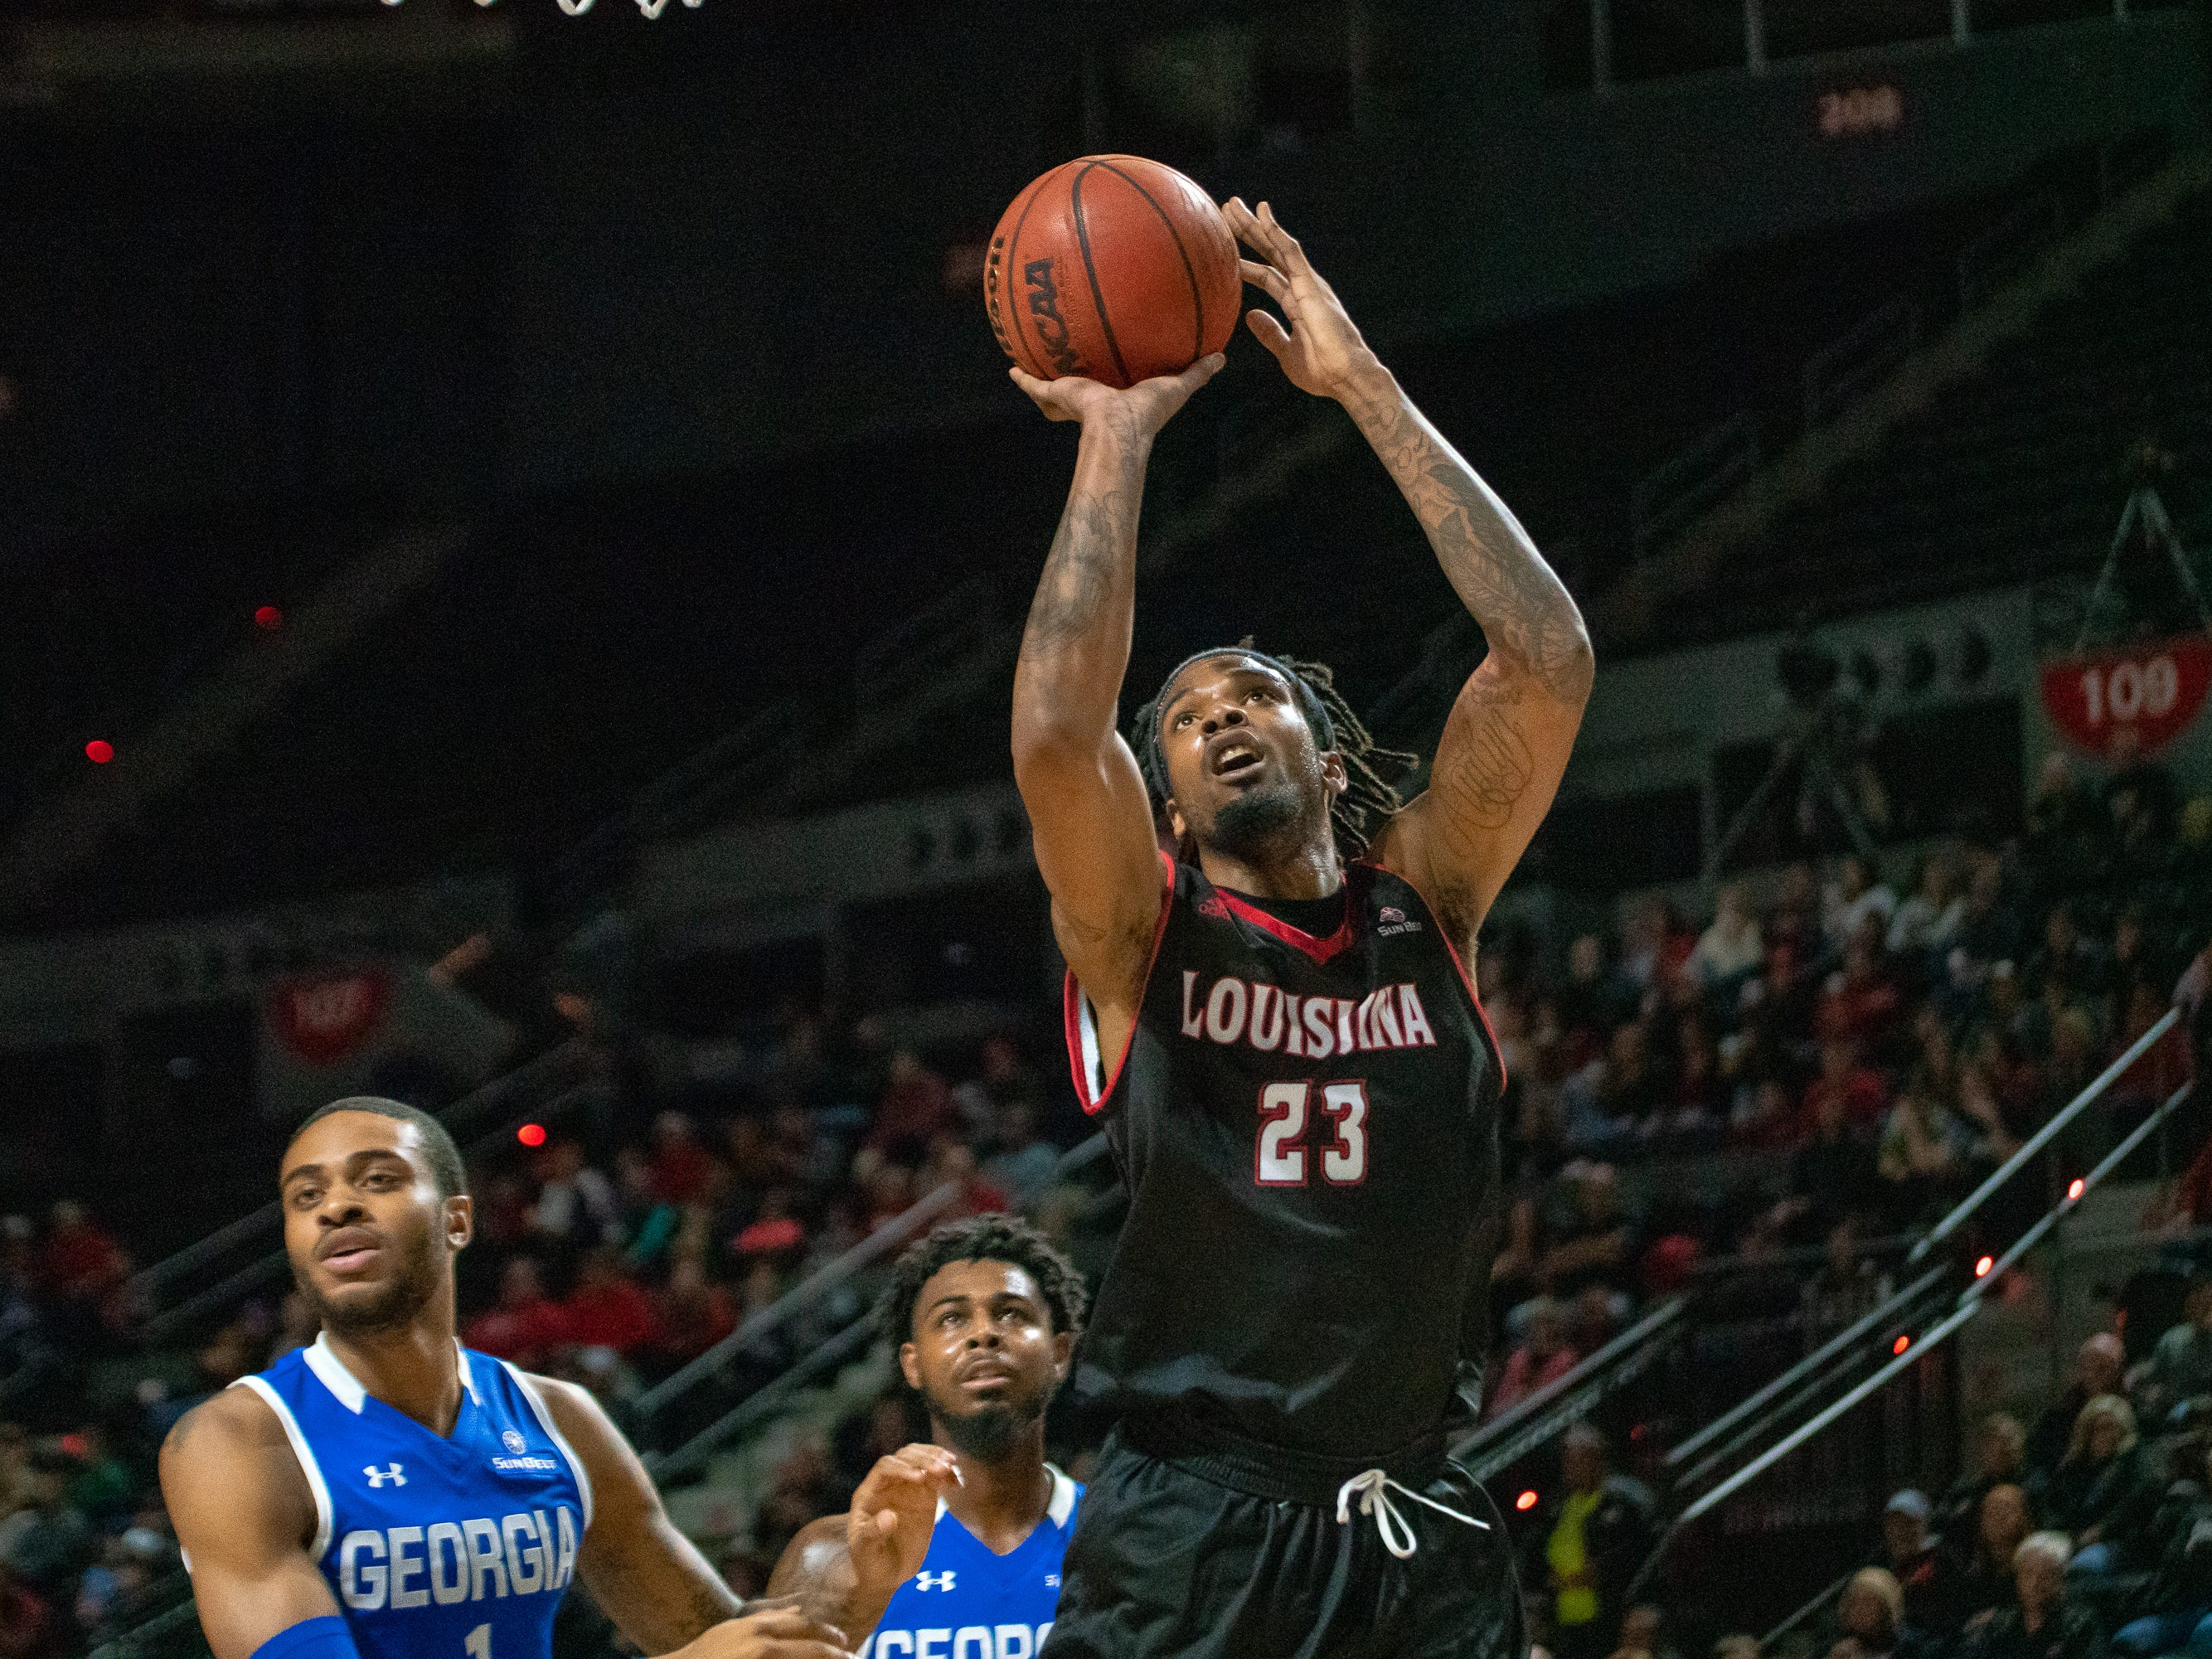 UL's Jakeenan Gant takes a shot from under the goal as the Ragin' Cajuns take on the Georgia State Panthers at the Cajundome on Feb. 8, 2019.